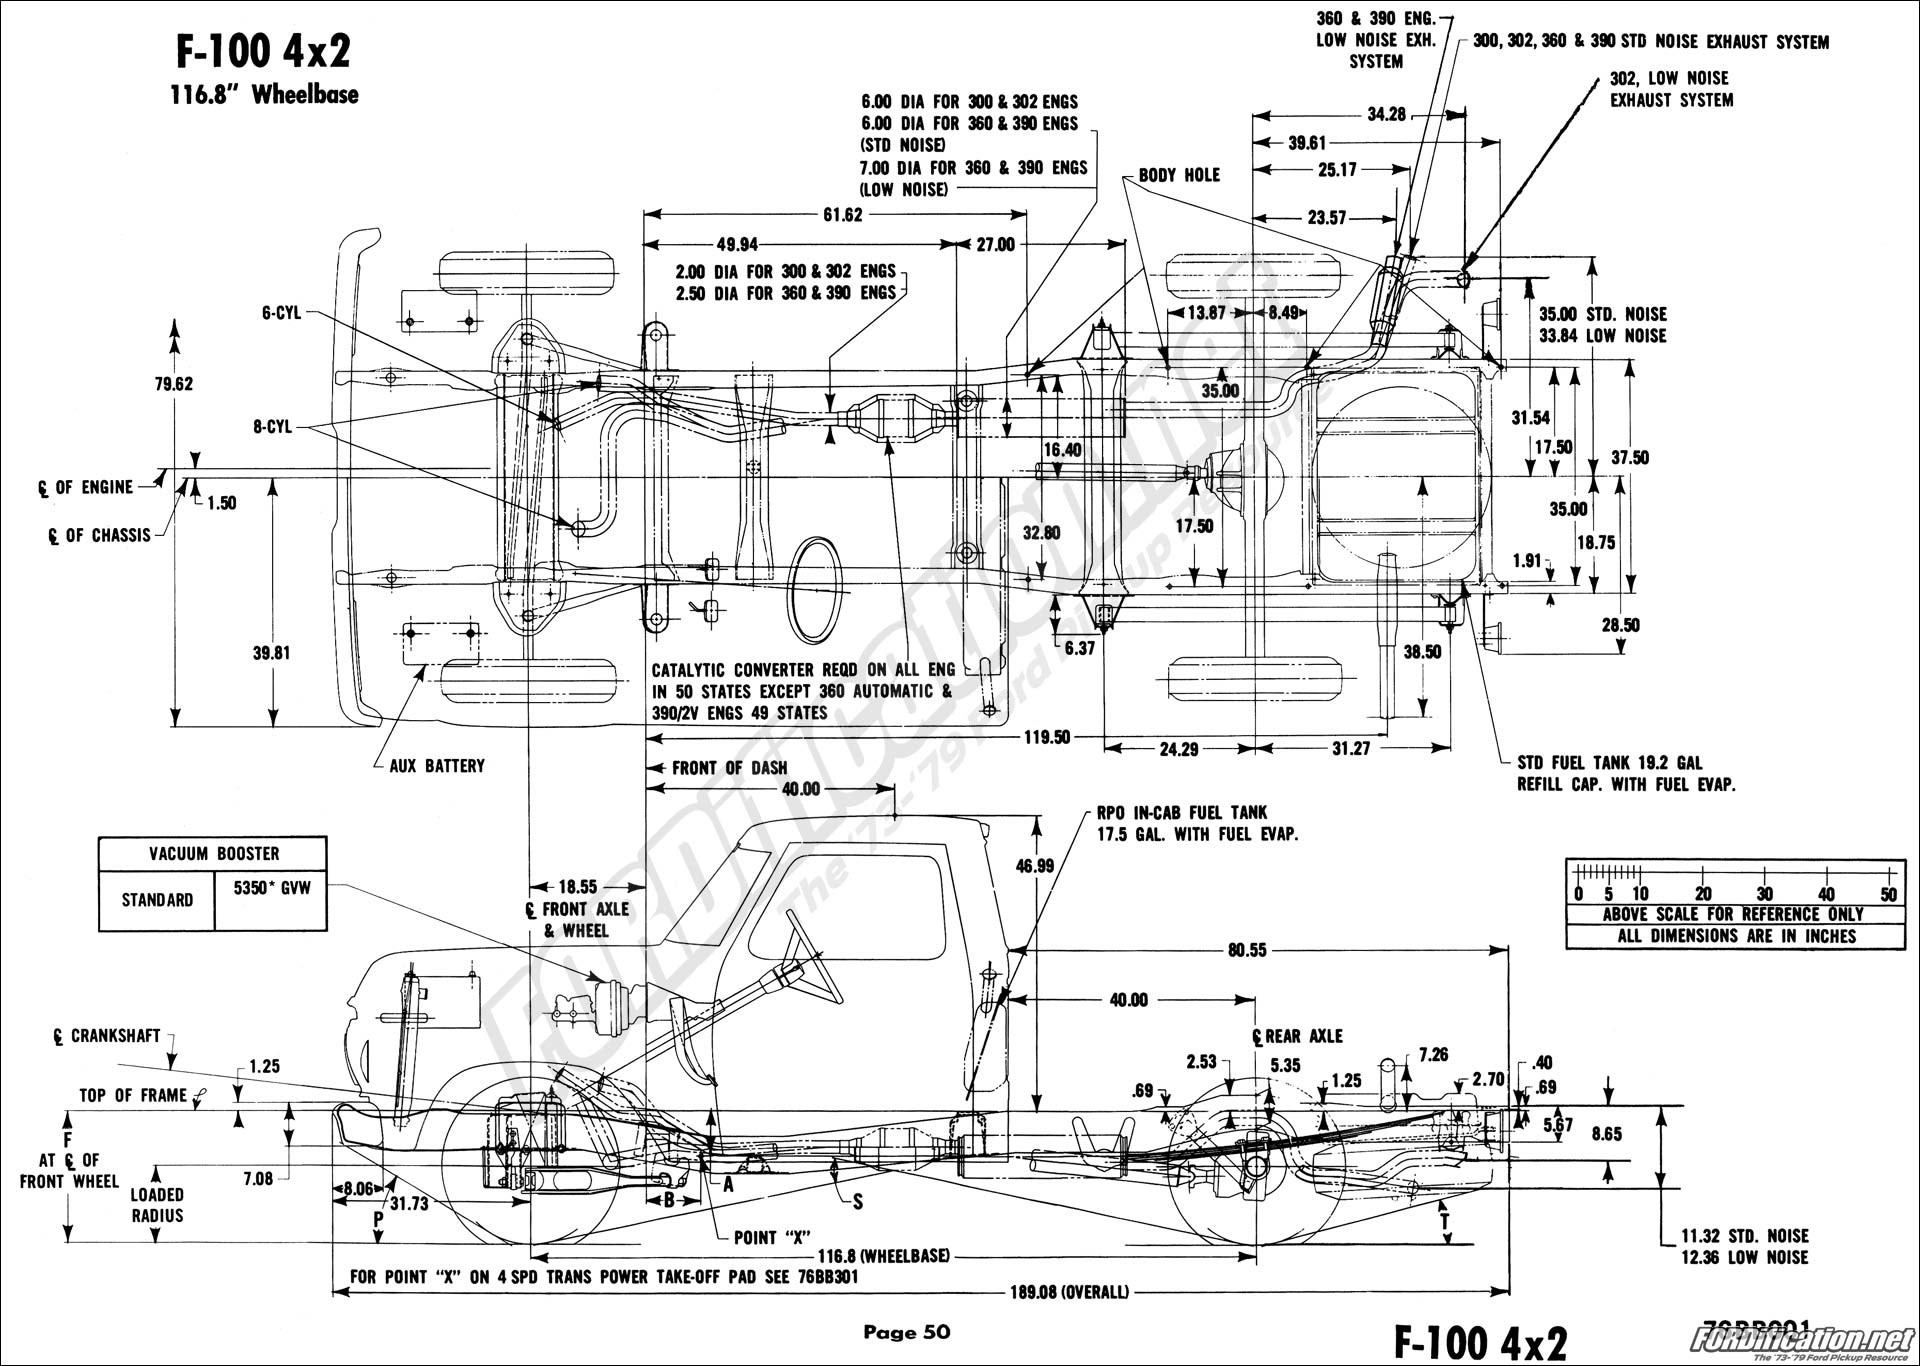 Viewtopic also 1971 Toyota Land Cruiser Wiring Diagrams further Viewtopic together with 1207653 1979 F100 Need A Picture Of The 2 And 3 Plug Harness Under The Ignition Module Pics Of Prob Inside in addition 2hpin Hello 1979 Chevy K10 Having Problems Fuel. on 1975 ford f100 electrical diagram